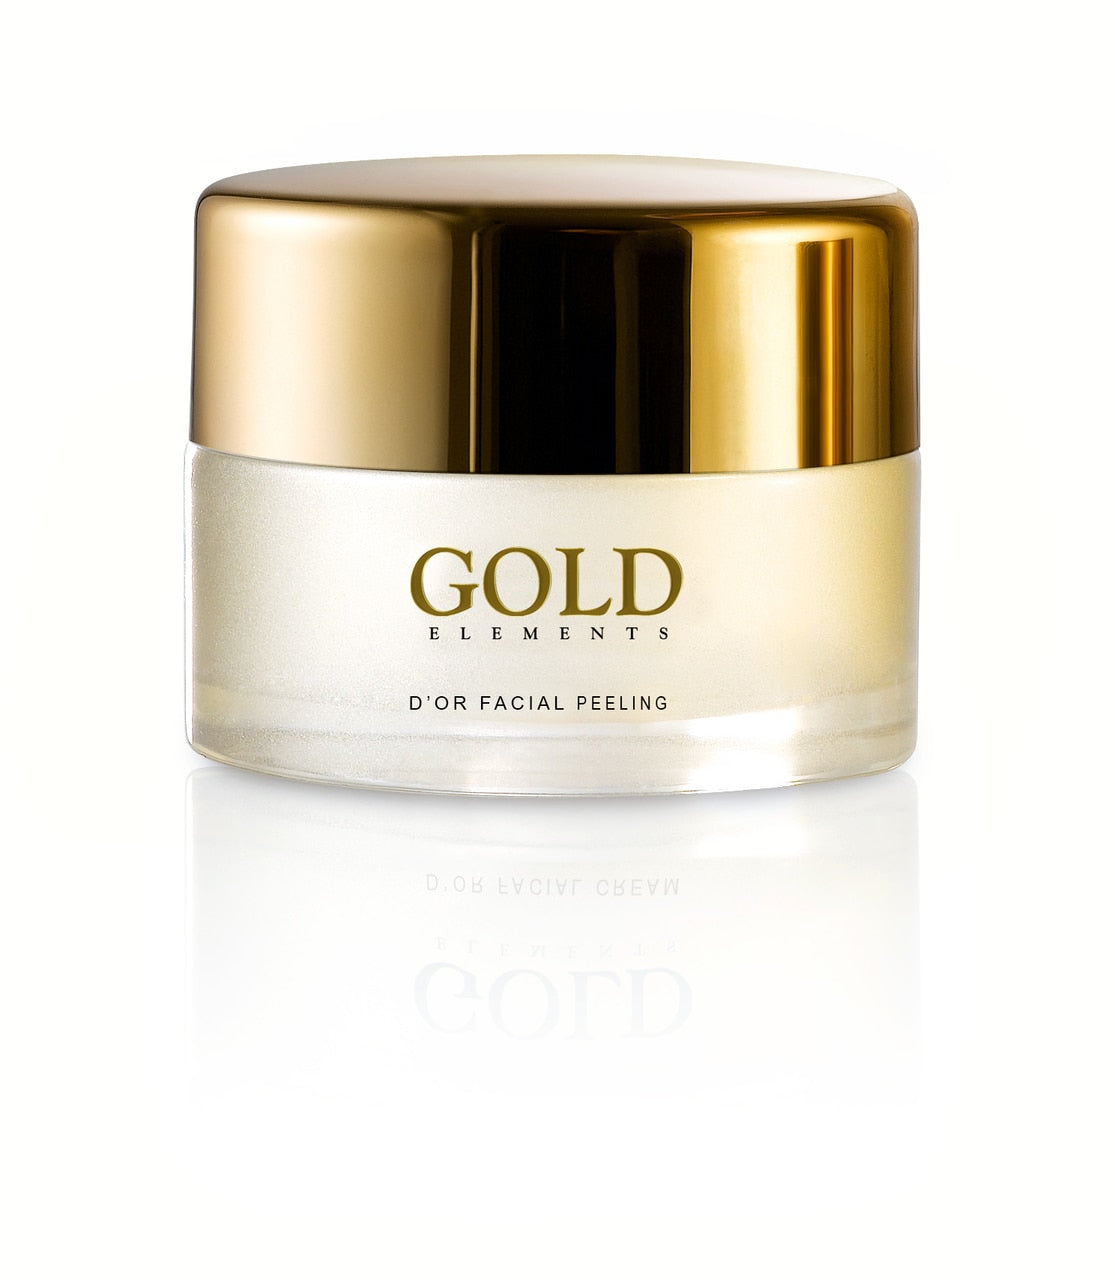 Gold Elements D'or Facial Peeling